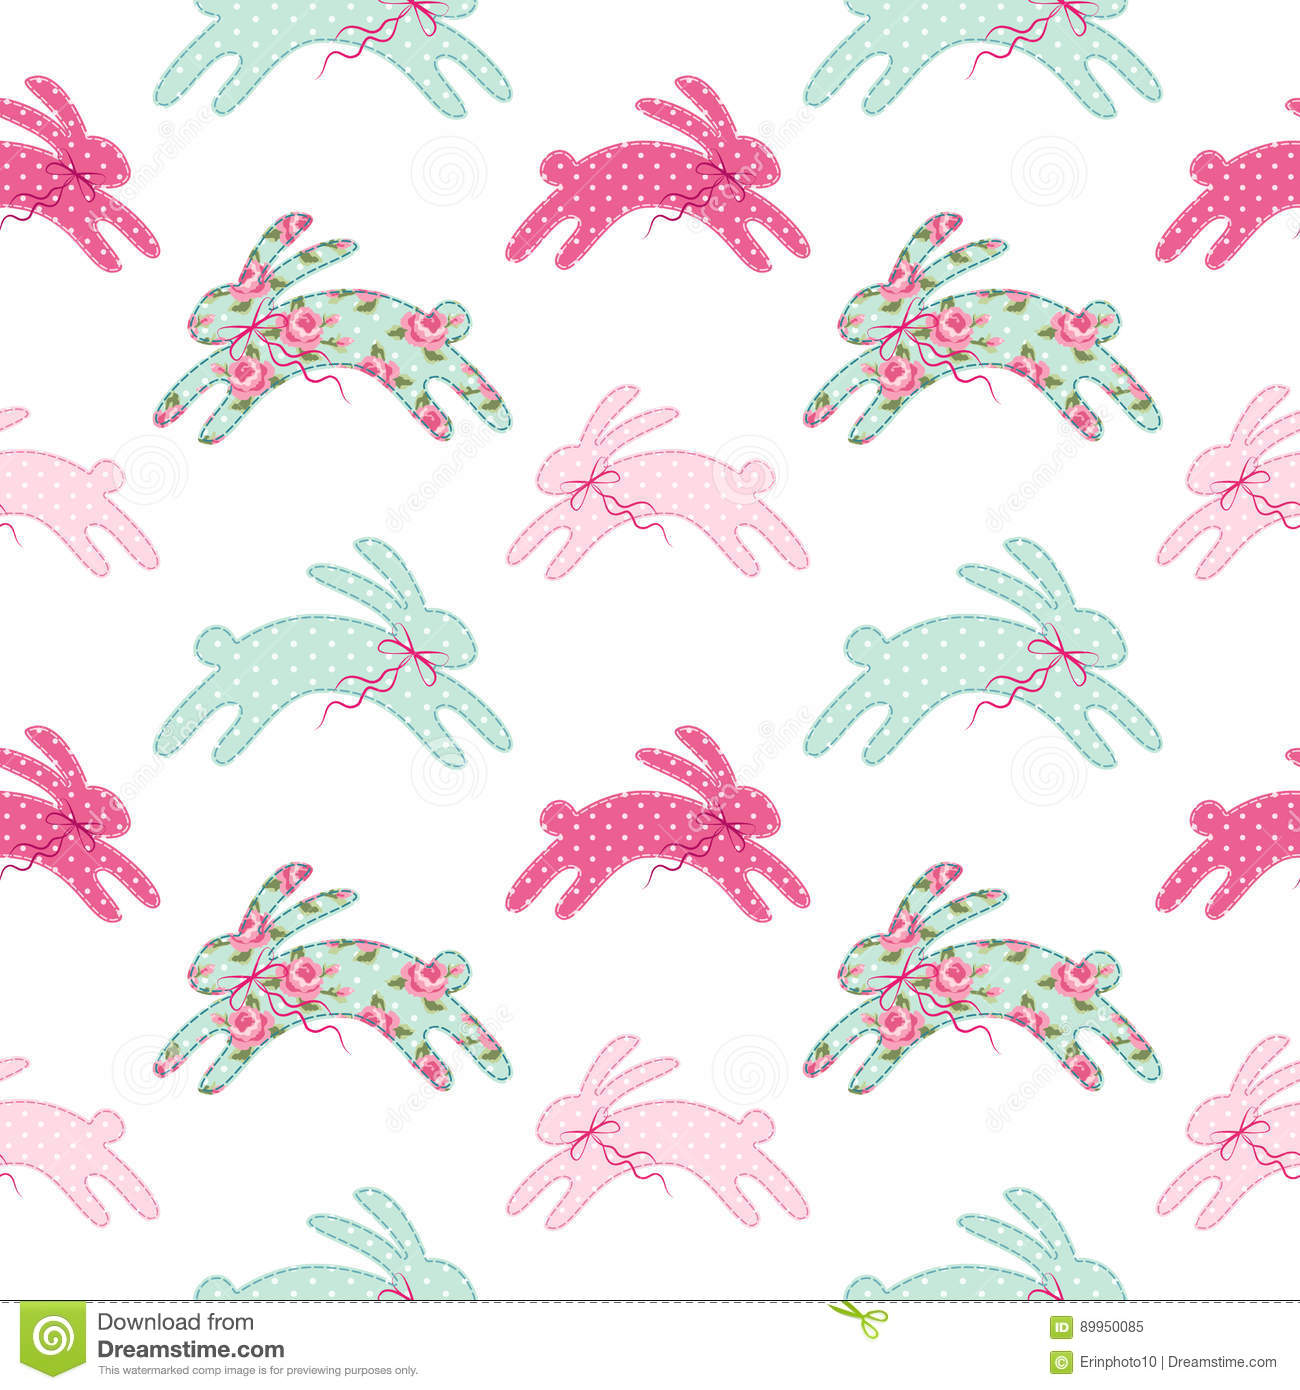 Cute vintage Easter seamless pattern with bunnies as retro fabric patch applique in shabby chic style